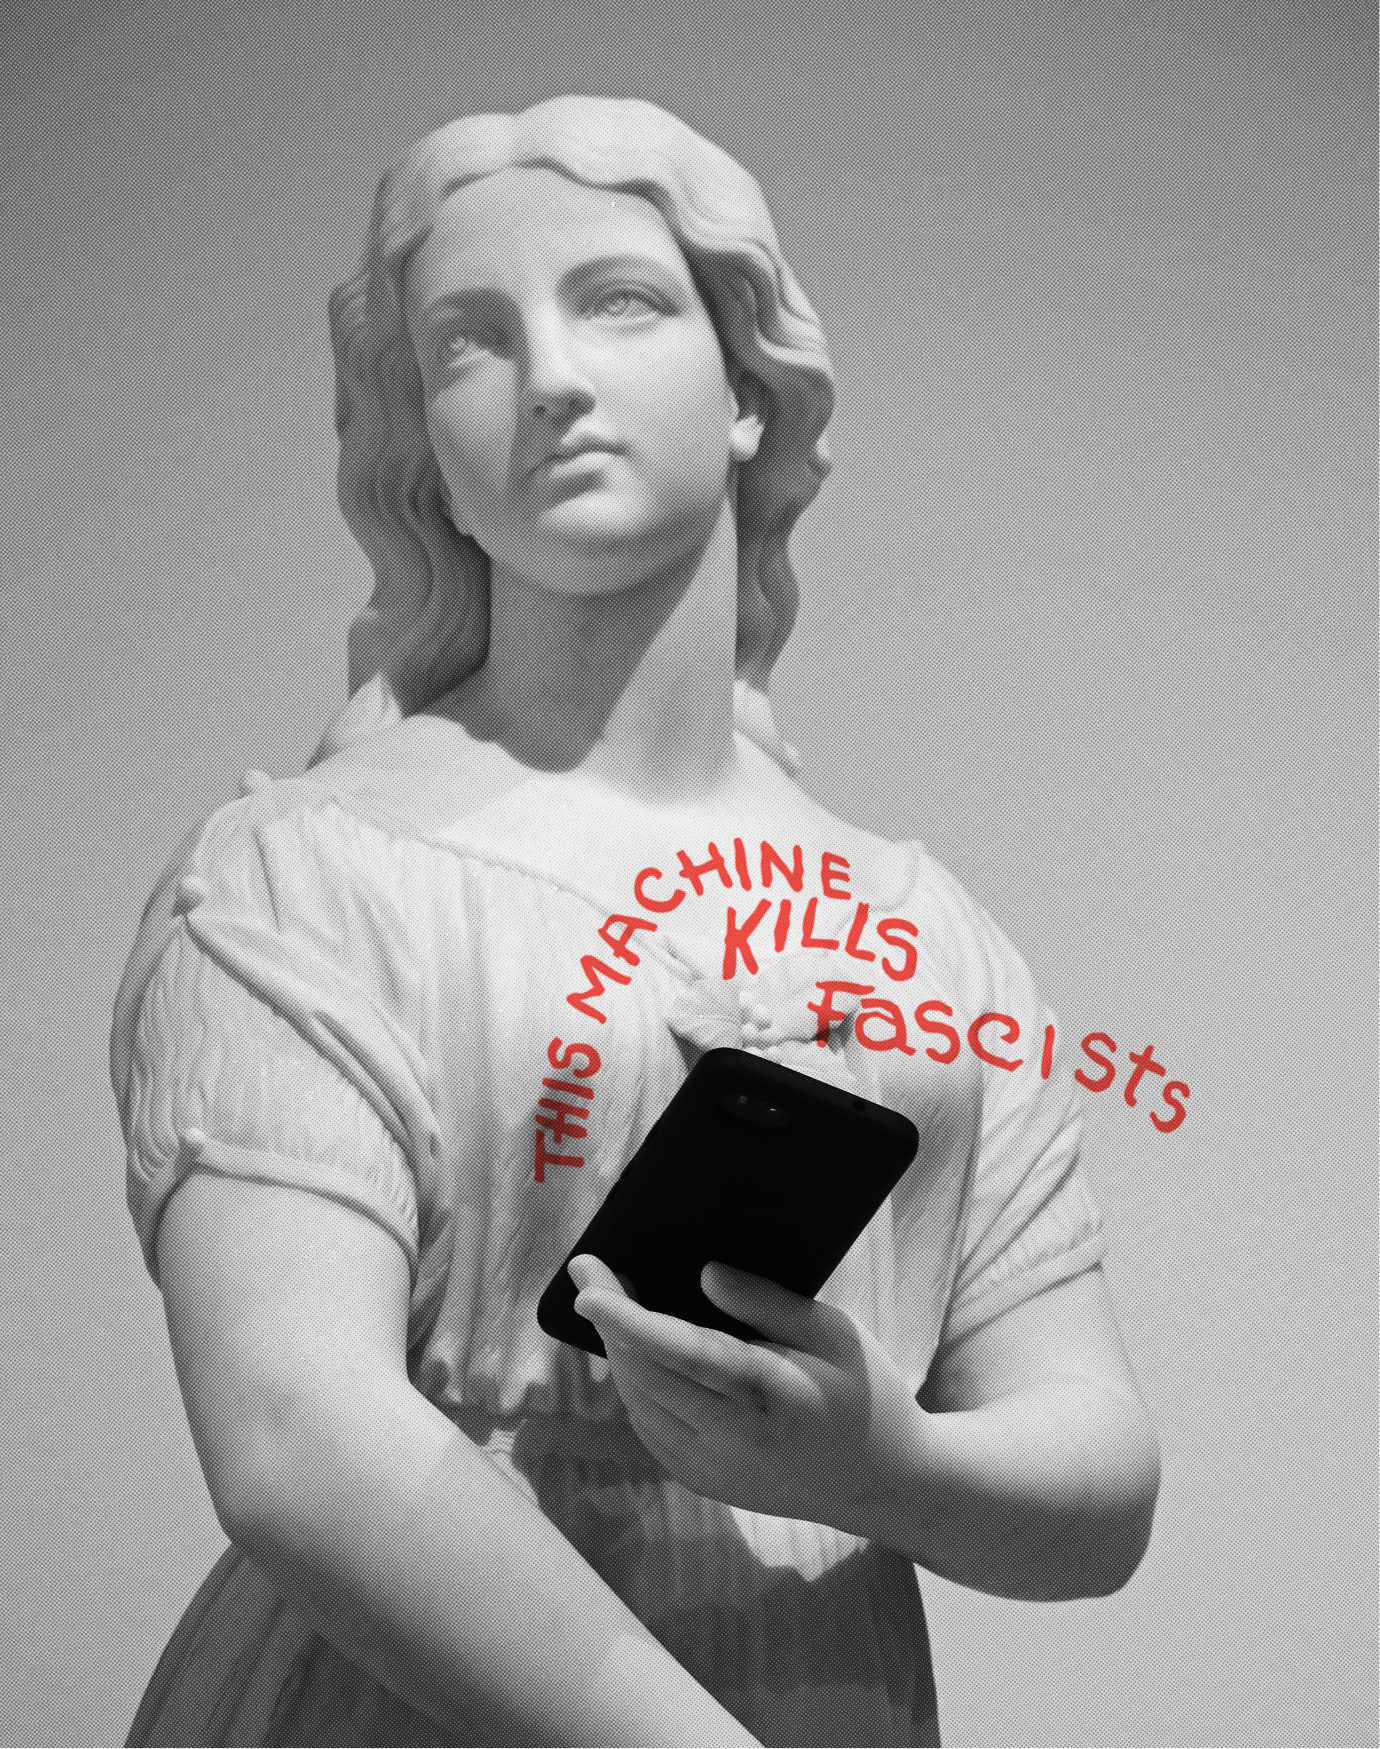 A grecian statue holding a cellphone. Message scrawled on it: This machine kills fascists